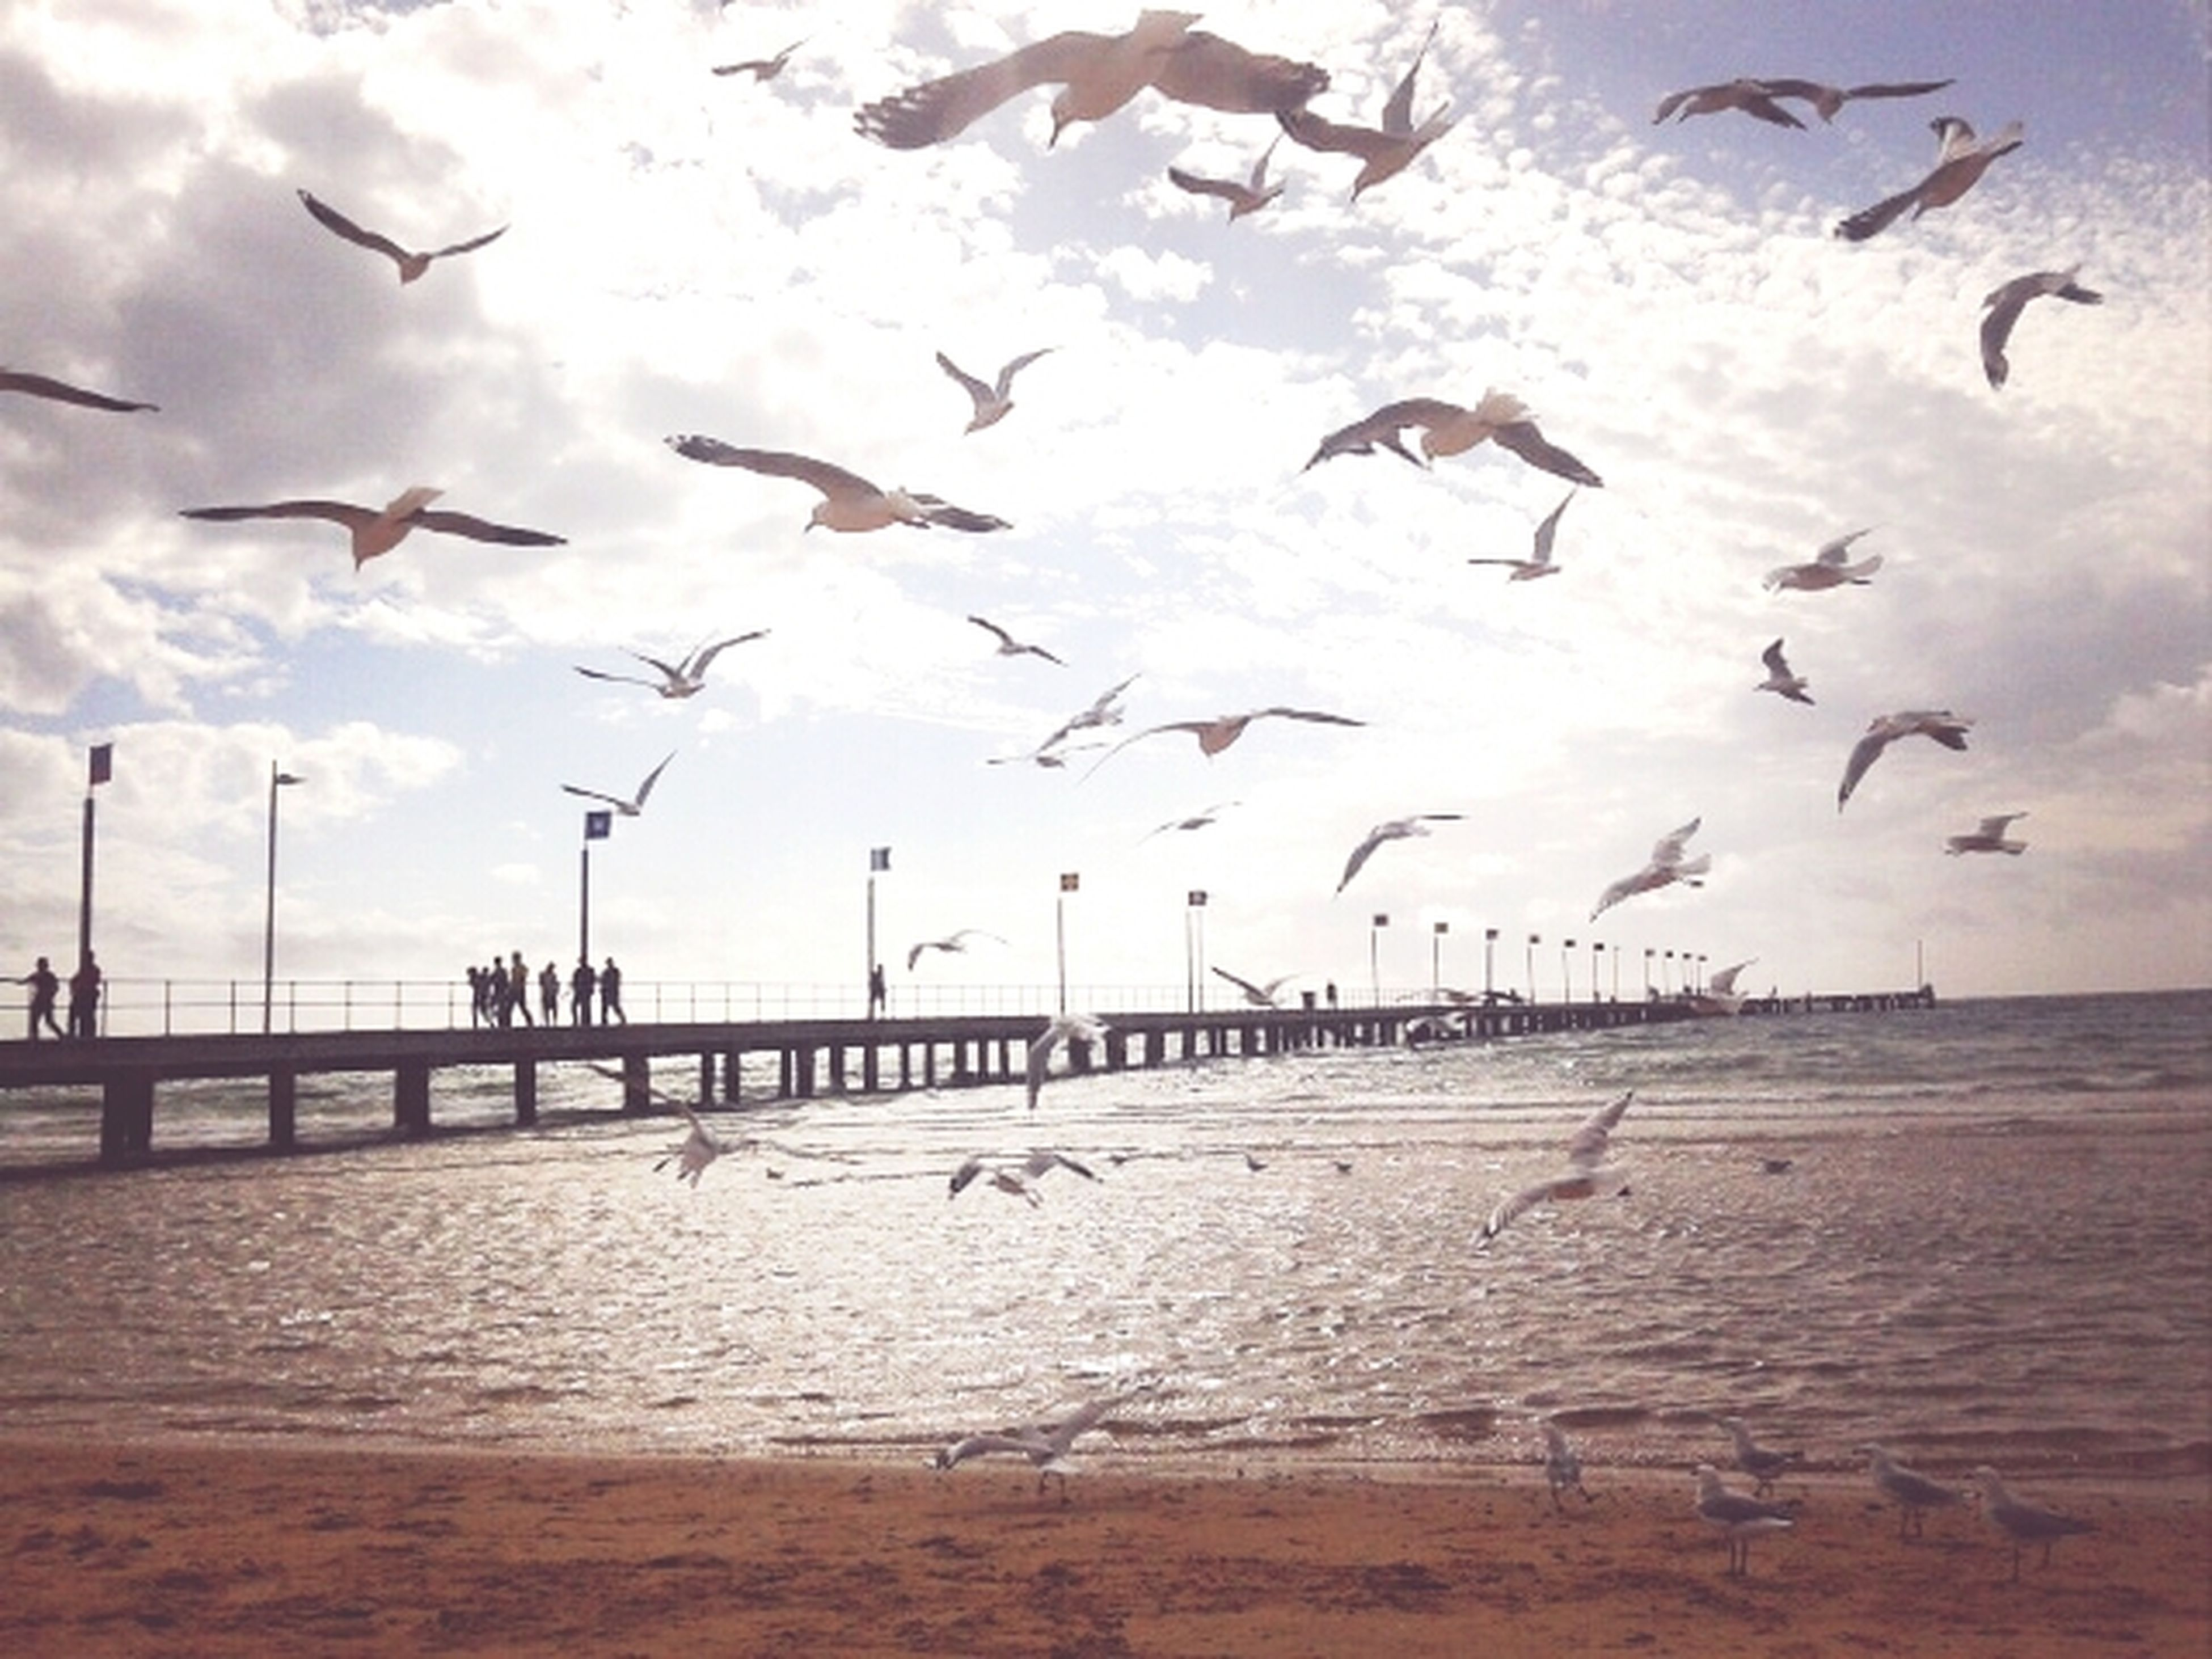 bird, sea, animals in the wild, water, animal themes, flying, wildlife, seagull, beach, flock of birds, sky, horizon over water, nature, shore, built structure, scenics, tranquility, pier, sand